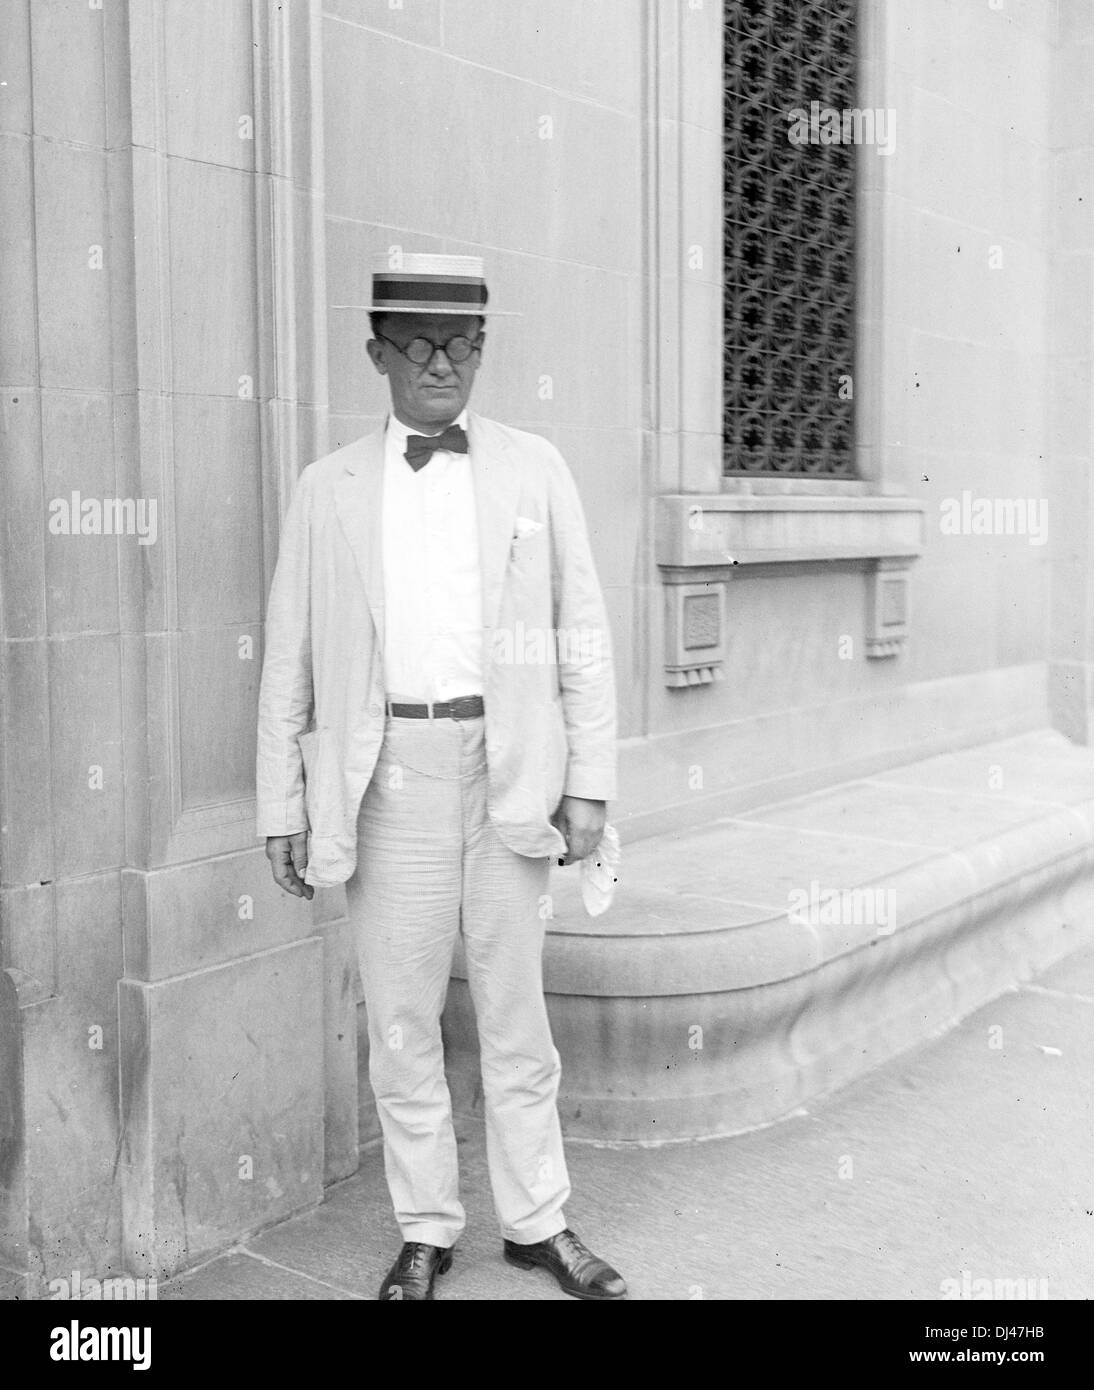 E.C. Yellowly, Chief of general prohibition agents - Stock Image